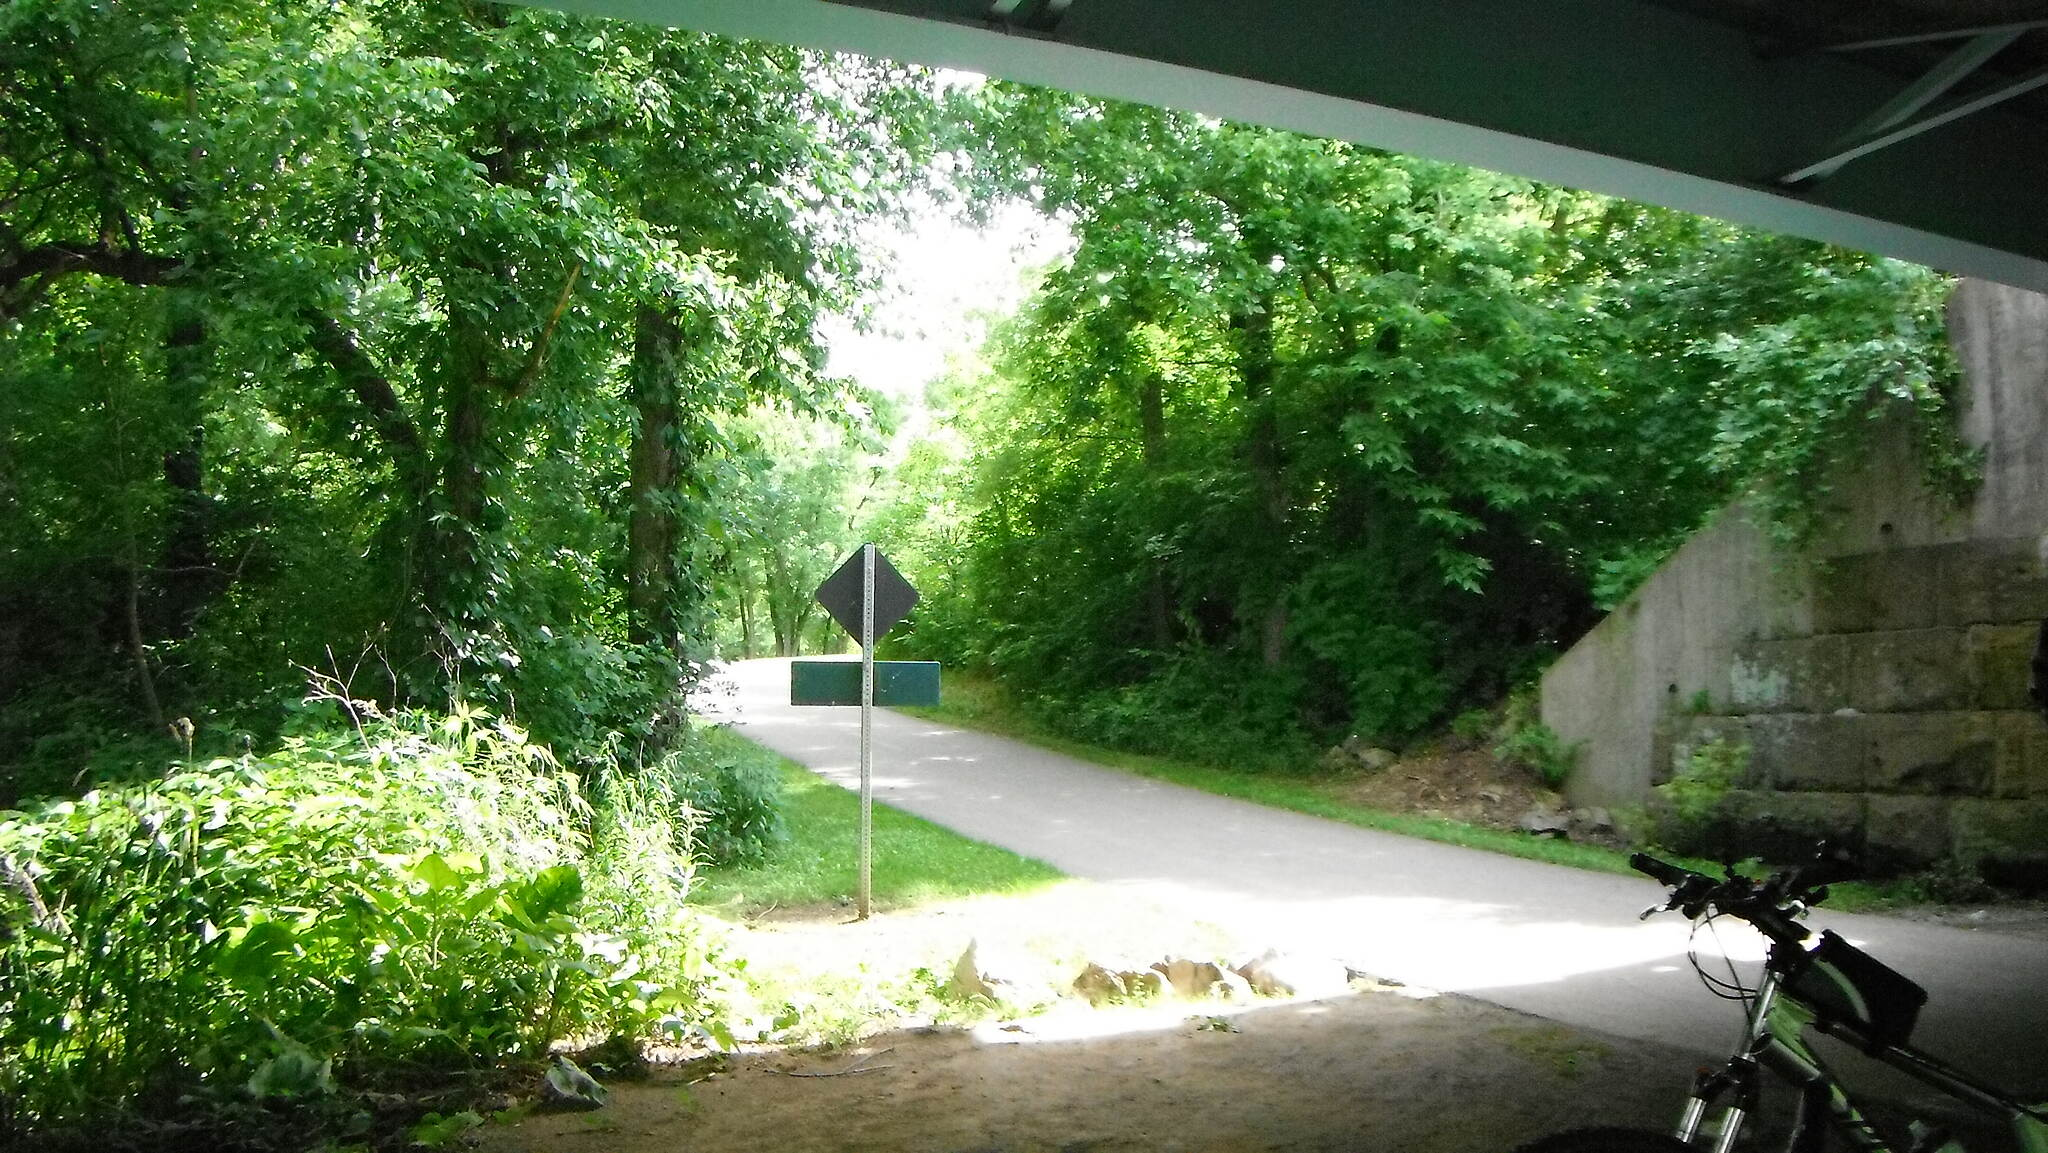 Alum Creek Greenway Trail Southbound under i270